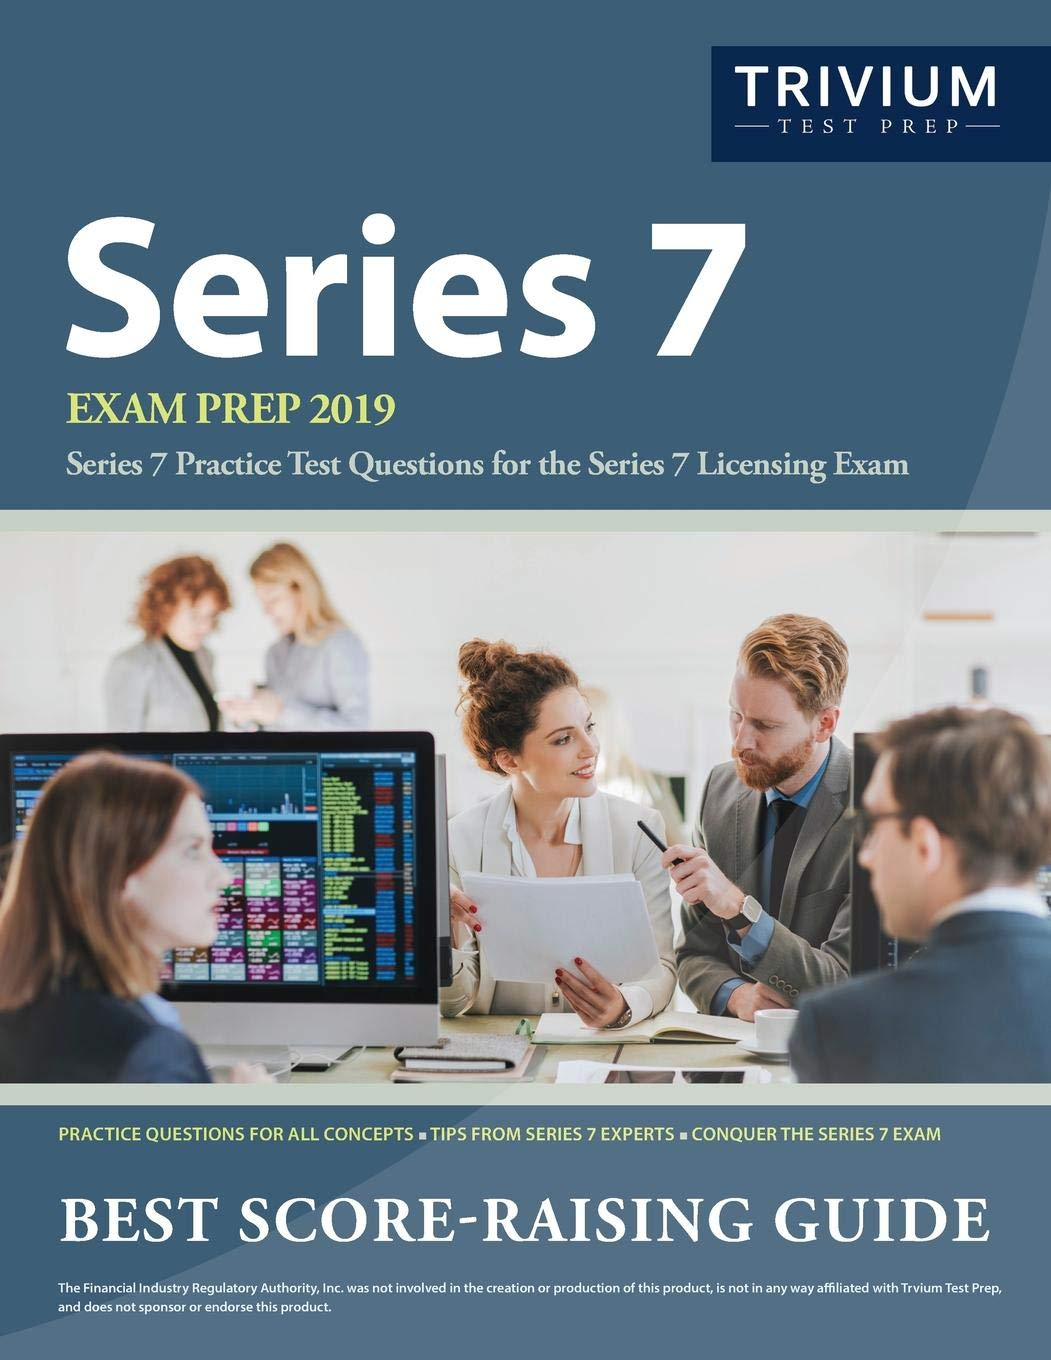 Series 7 Exam Prep 2019: Series 7 Practice Test Questions